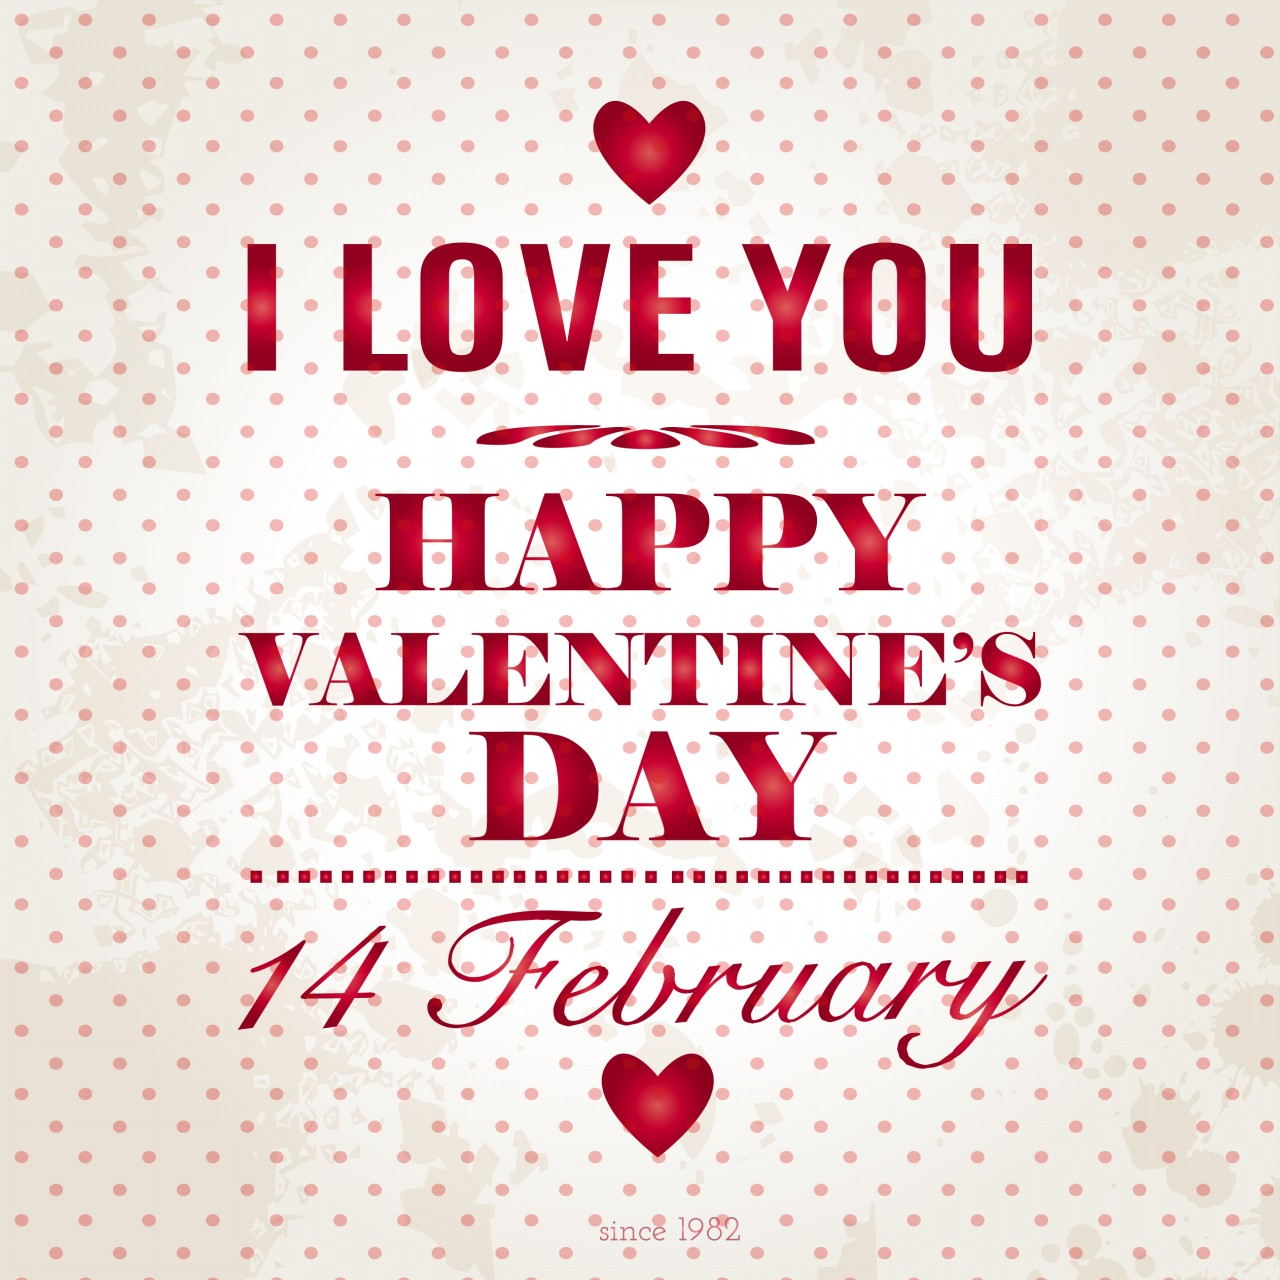 Happy Quotes Tagalog Twitter: Happy Valentines Day I Love You Quotes Tagalog